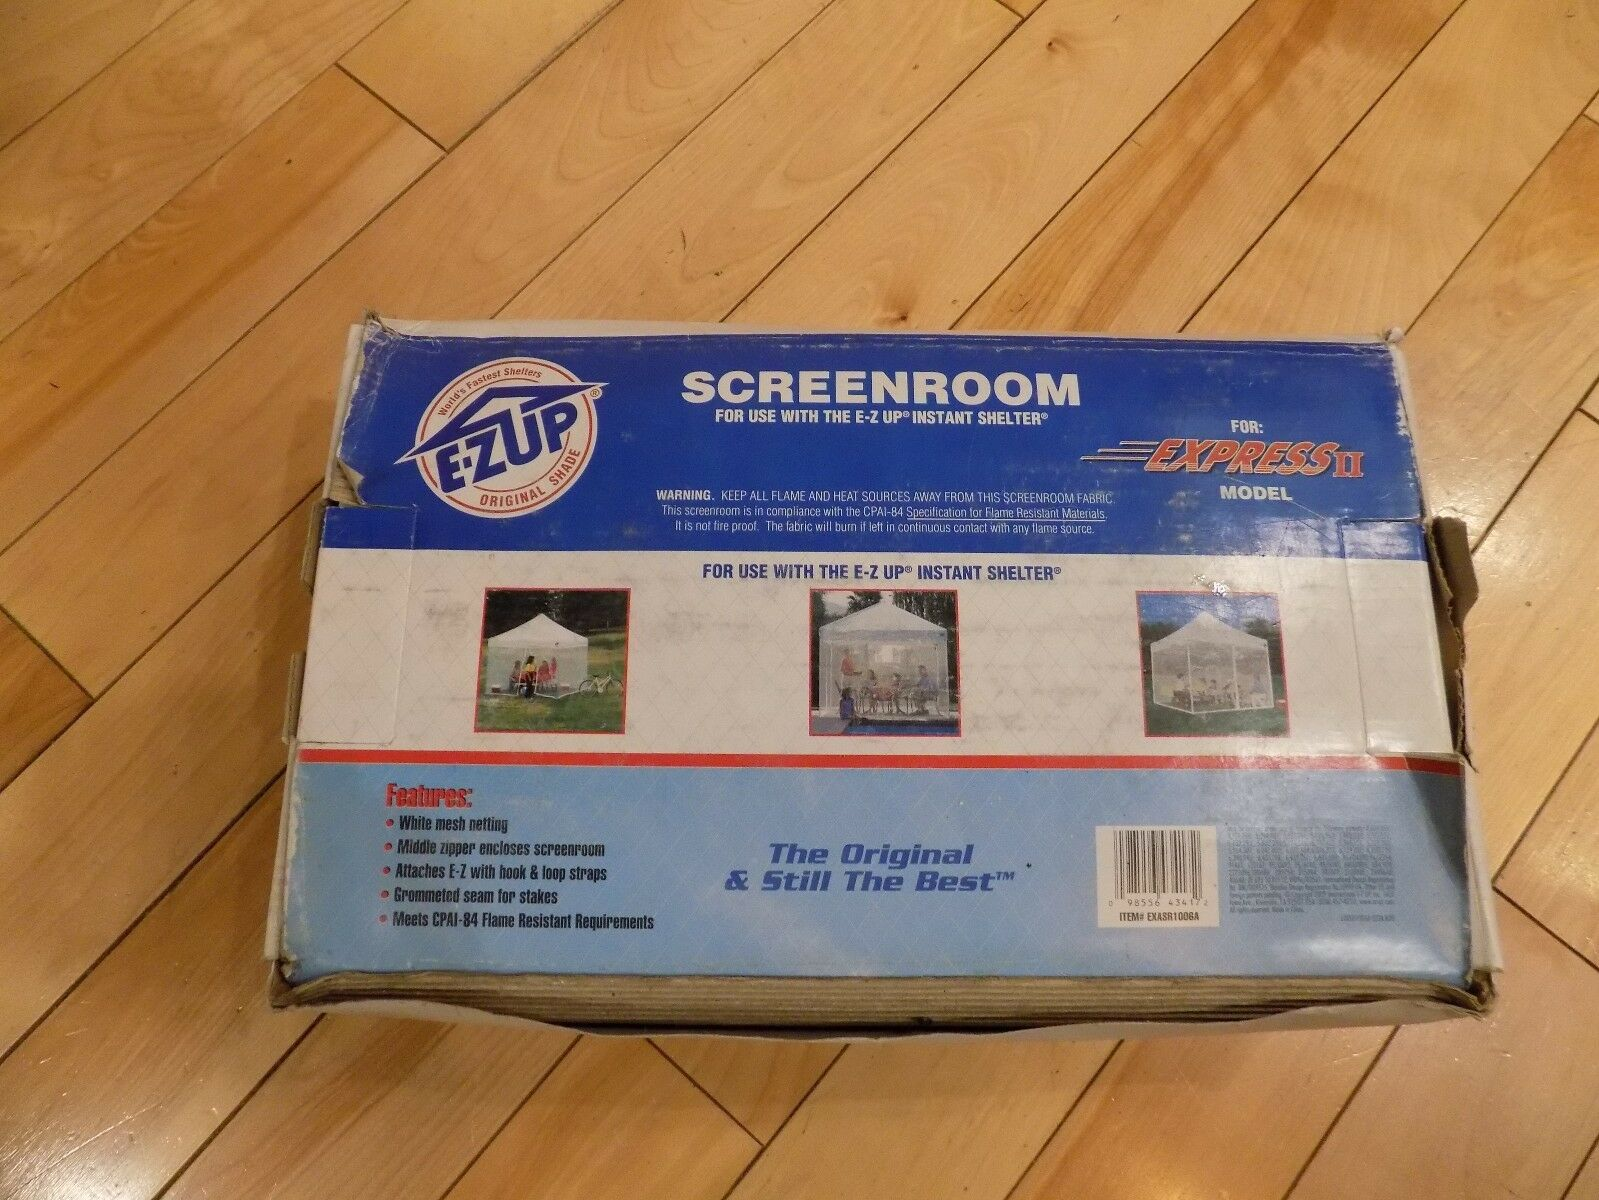 E-Z Up  Screenroom Screen ONLY Room For Express II Model Instant Shelter  clearance